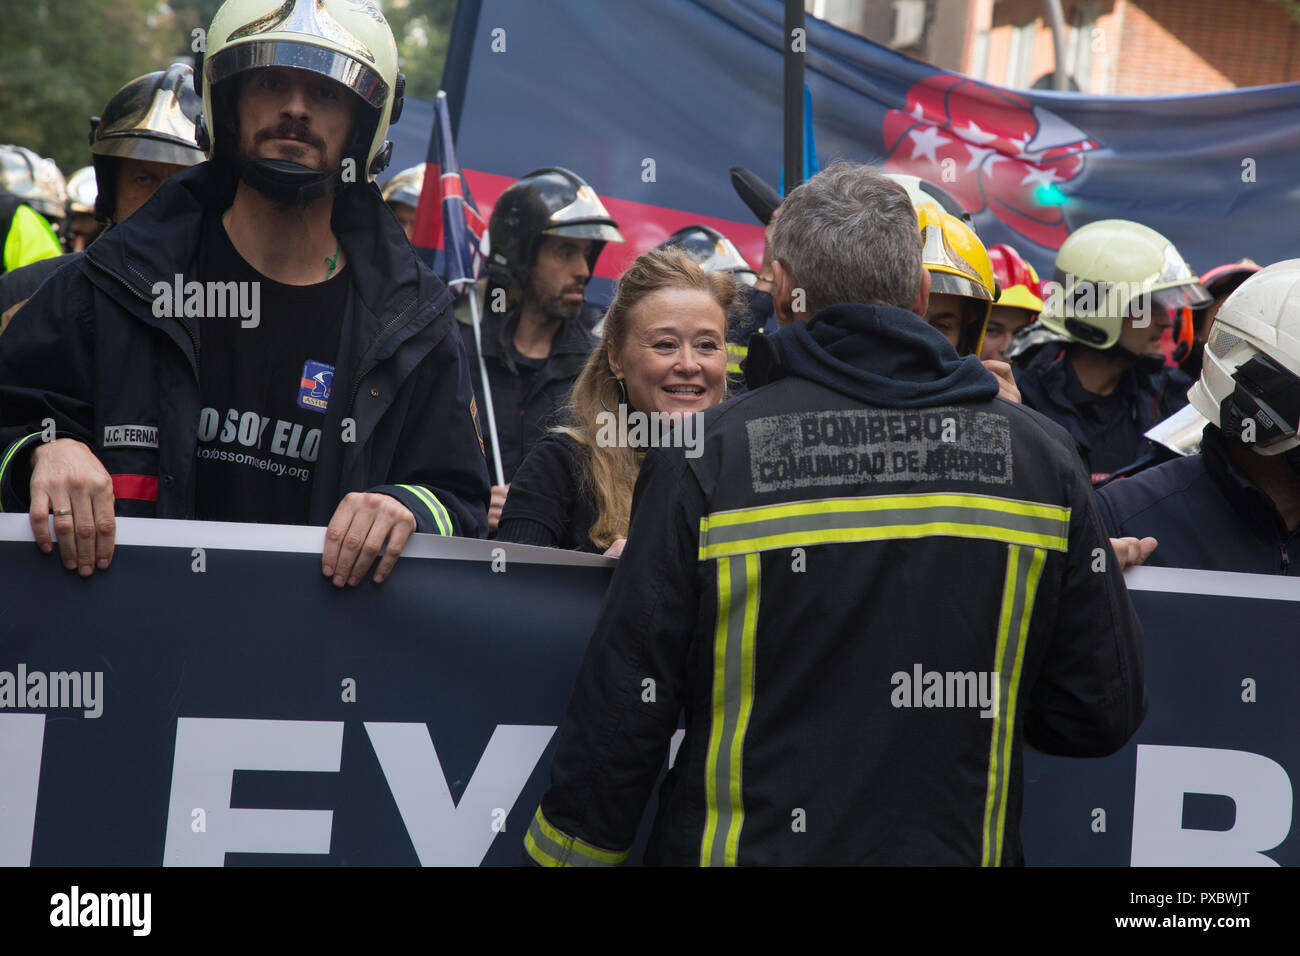 Madrid, Spain. 20th Oct, 2018. Wife of Eloy Palacios, asturian firefighter who was killed seen greeting a firefighter during the protest. Firemen demonstrated in Madrid for a law that guarantees decent working conditions and ends precariousness and insecurity in their work. They also commemorated their colleague Eloy Palacio, the Asturian fireman who was killed in service because he did not have the necessary resources for his work. Credit: SOPA Images Limited/Alamy Live News - Stock Image